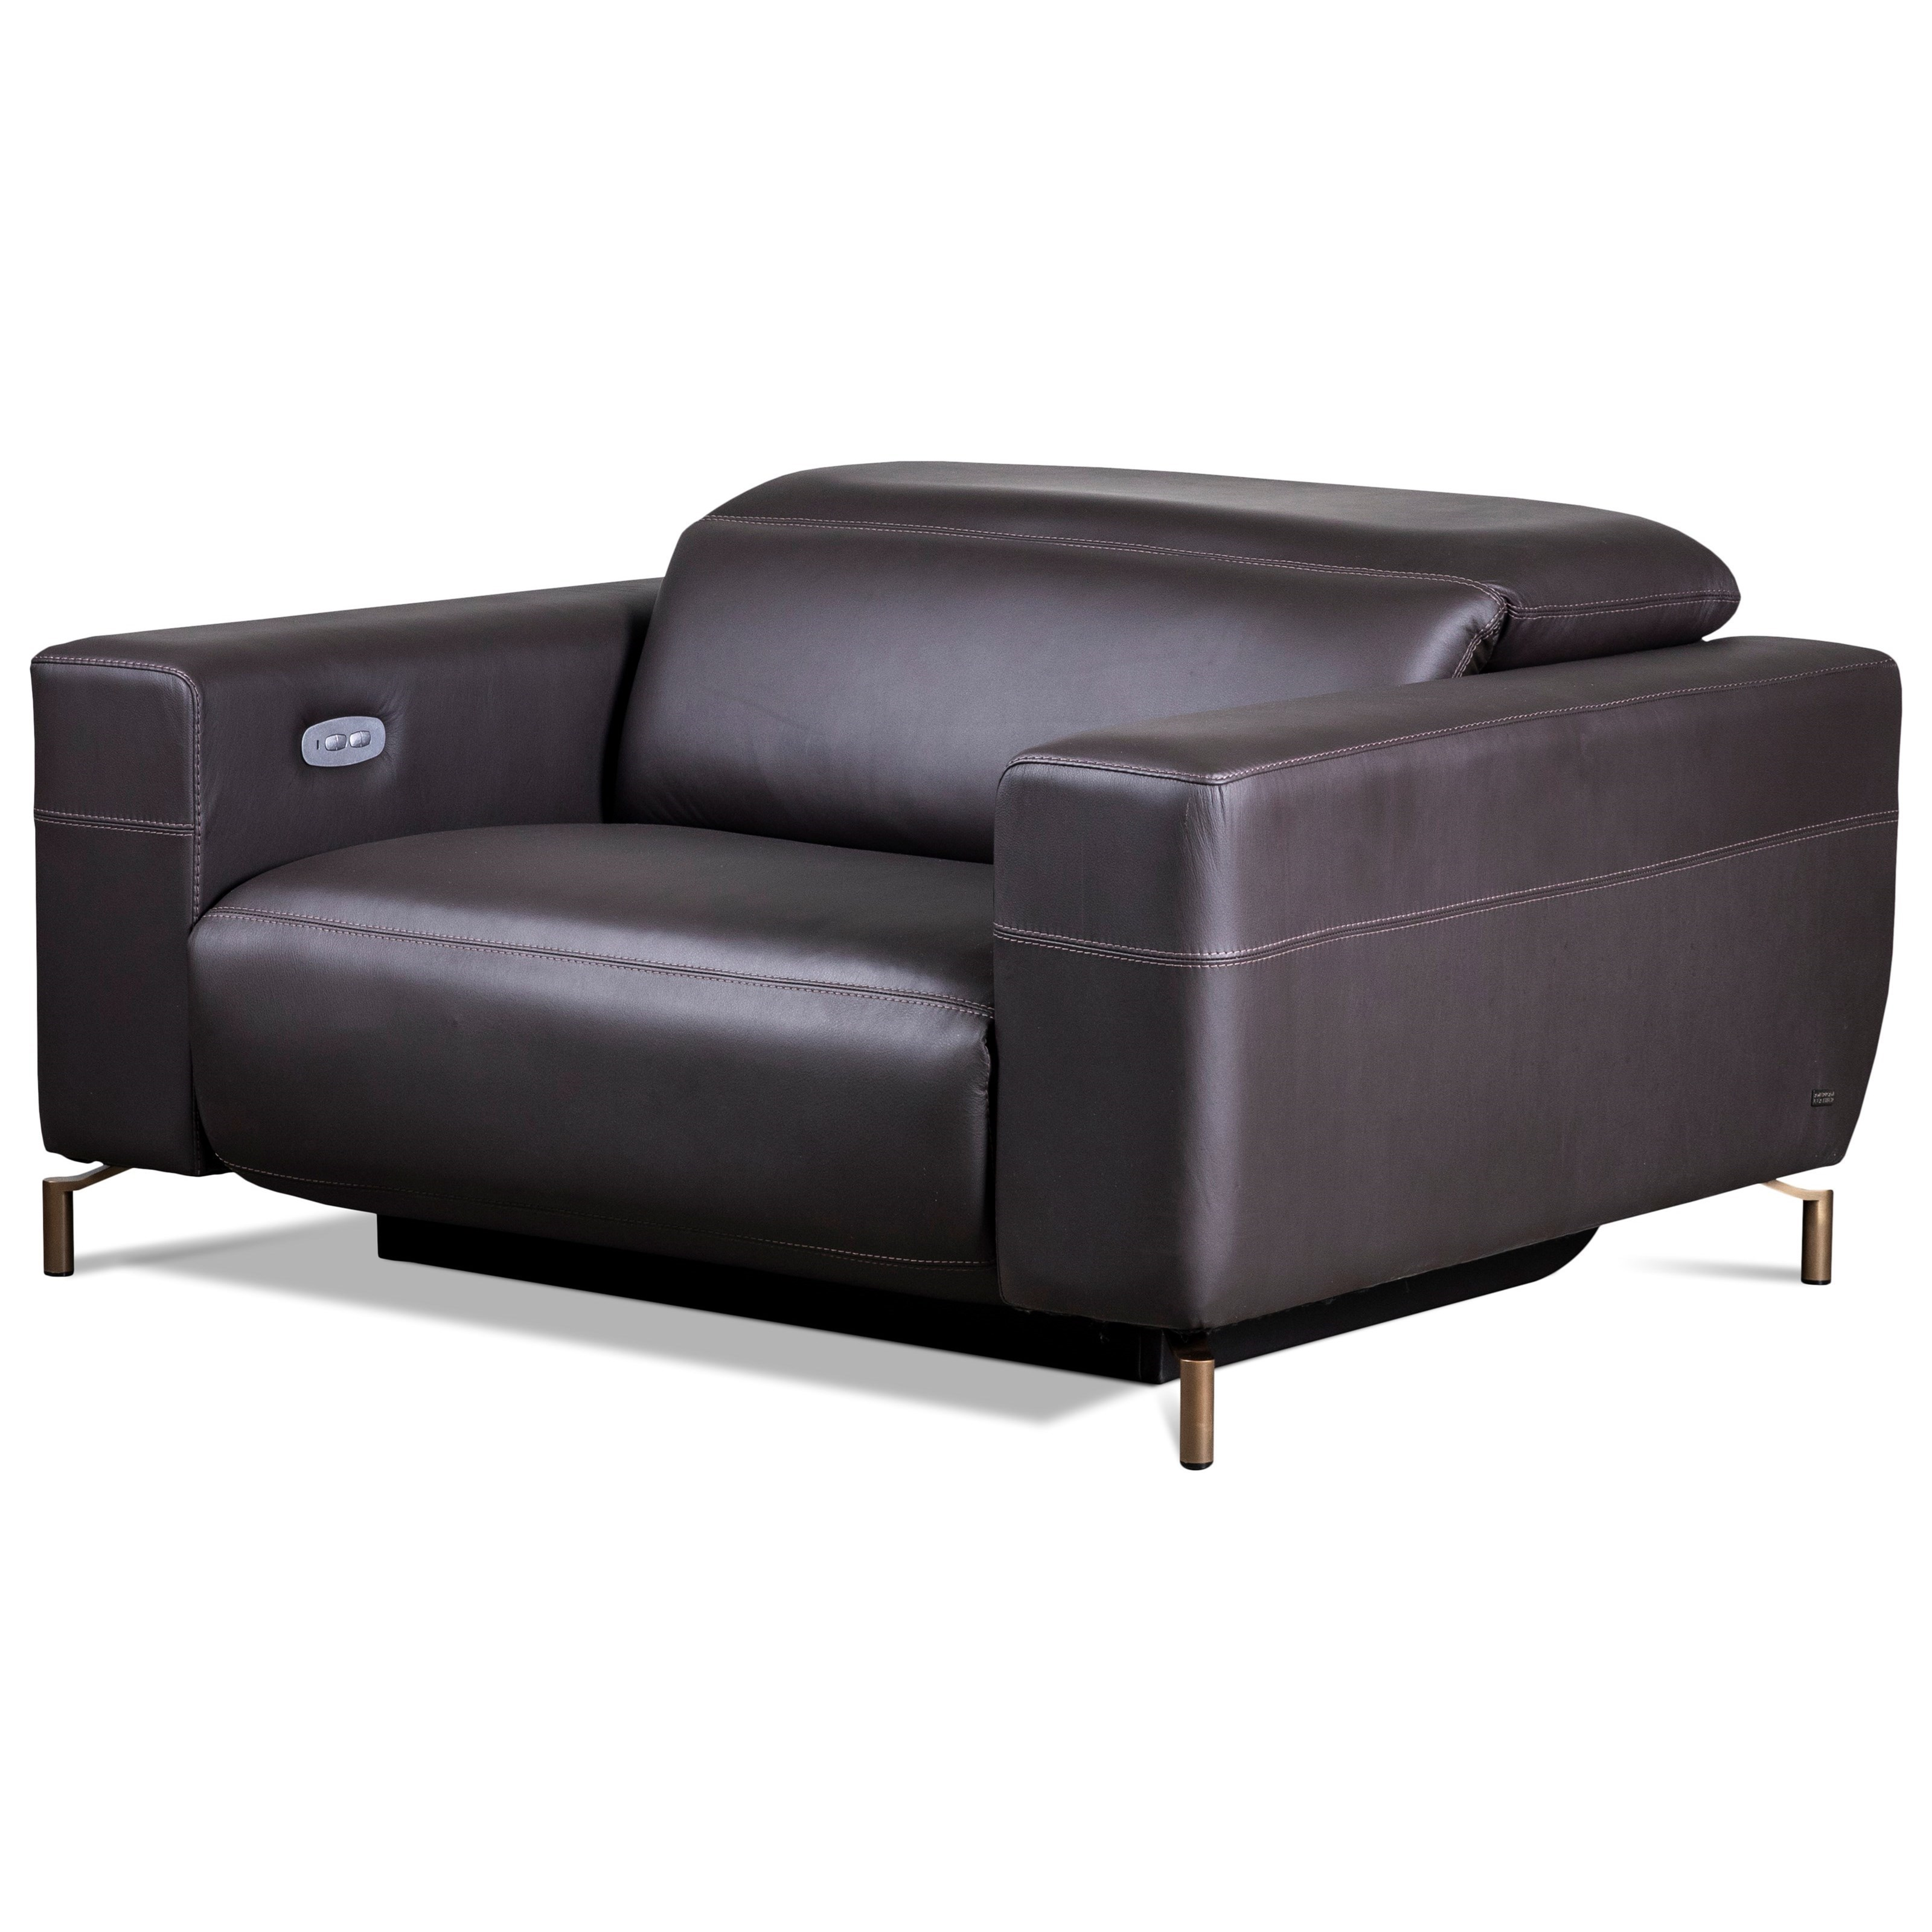 American Leather Monza Contemporary European Style Oversized